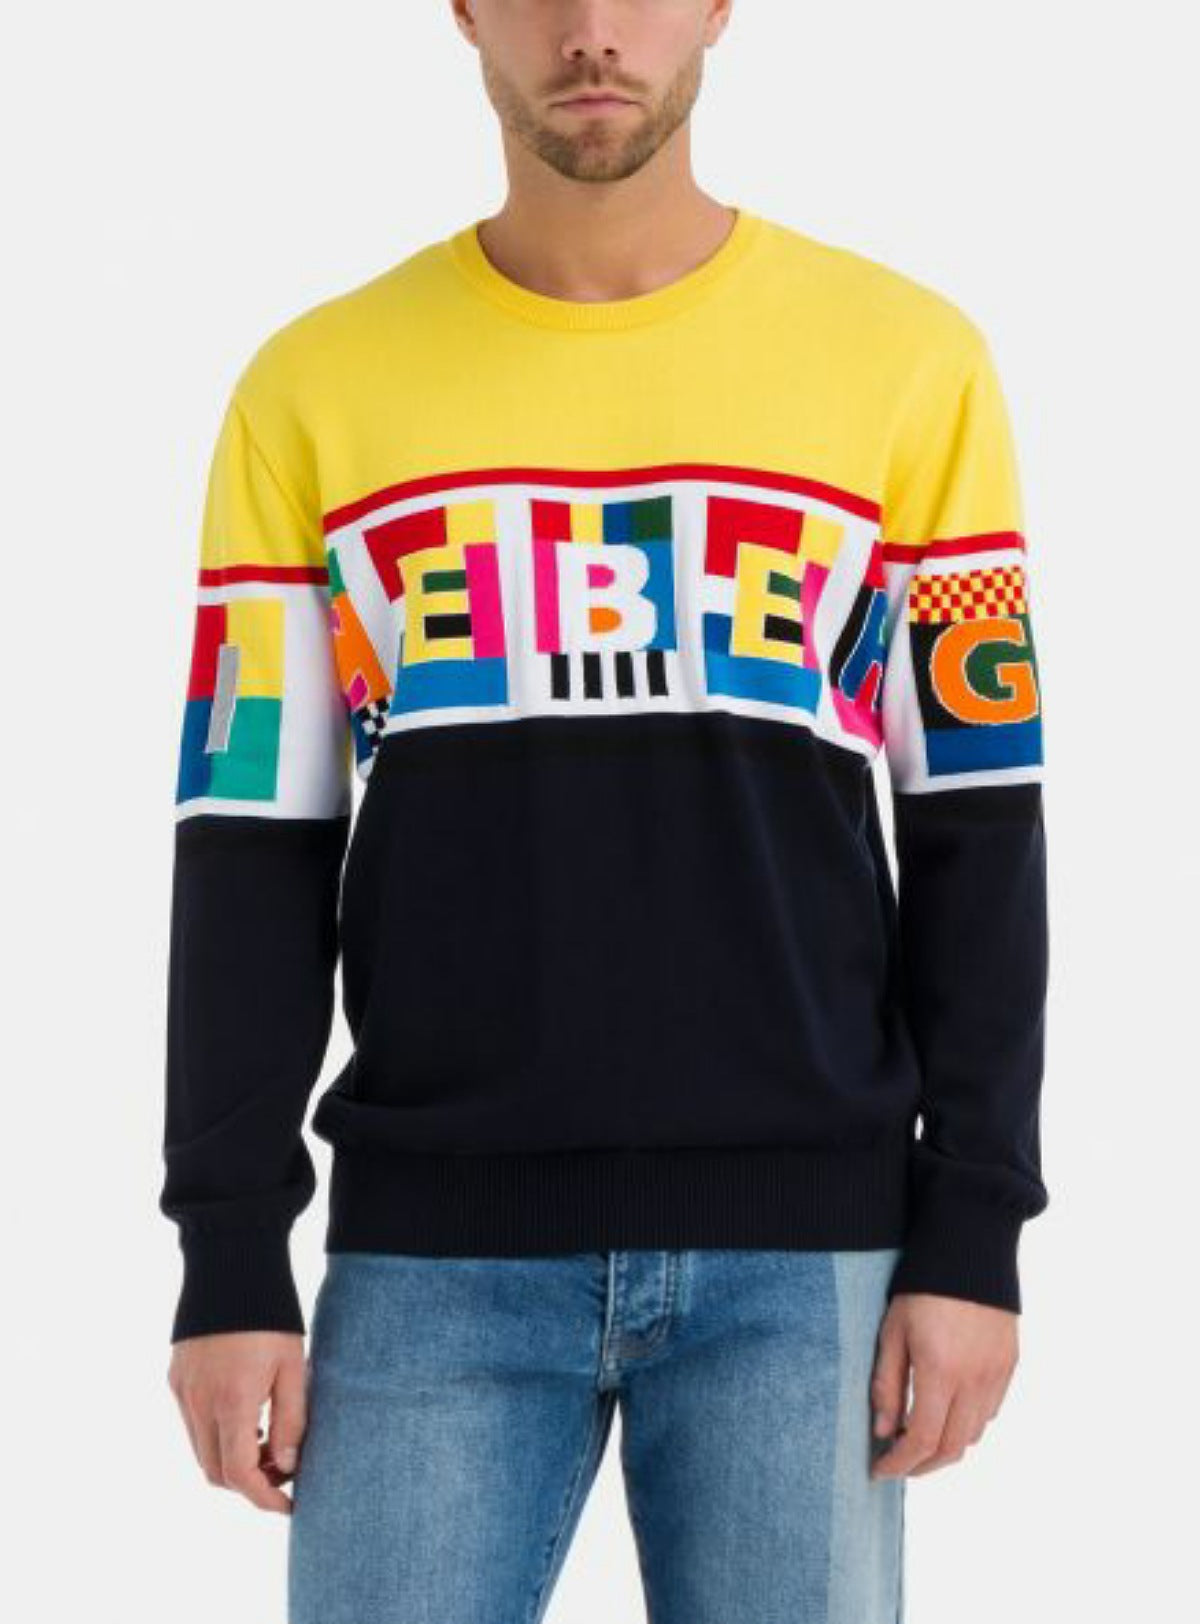 Iceberg Sweater - Yellow With Multicolor Letter Graphic - A0217